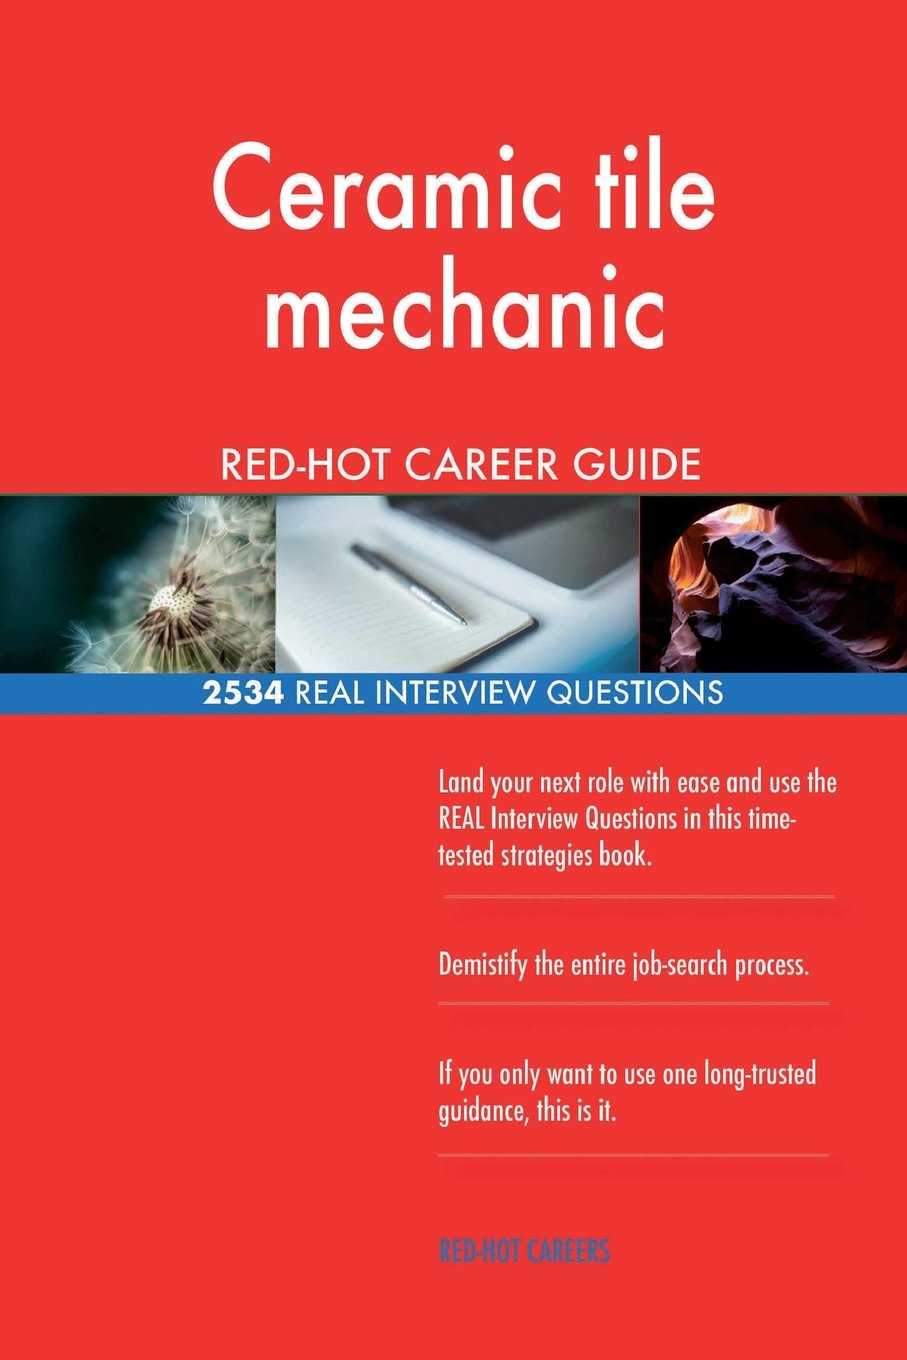 Ceramic tile mechanic RED-HOT Career Guide; 2534 REAL Interview Questions PDF